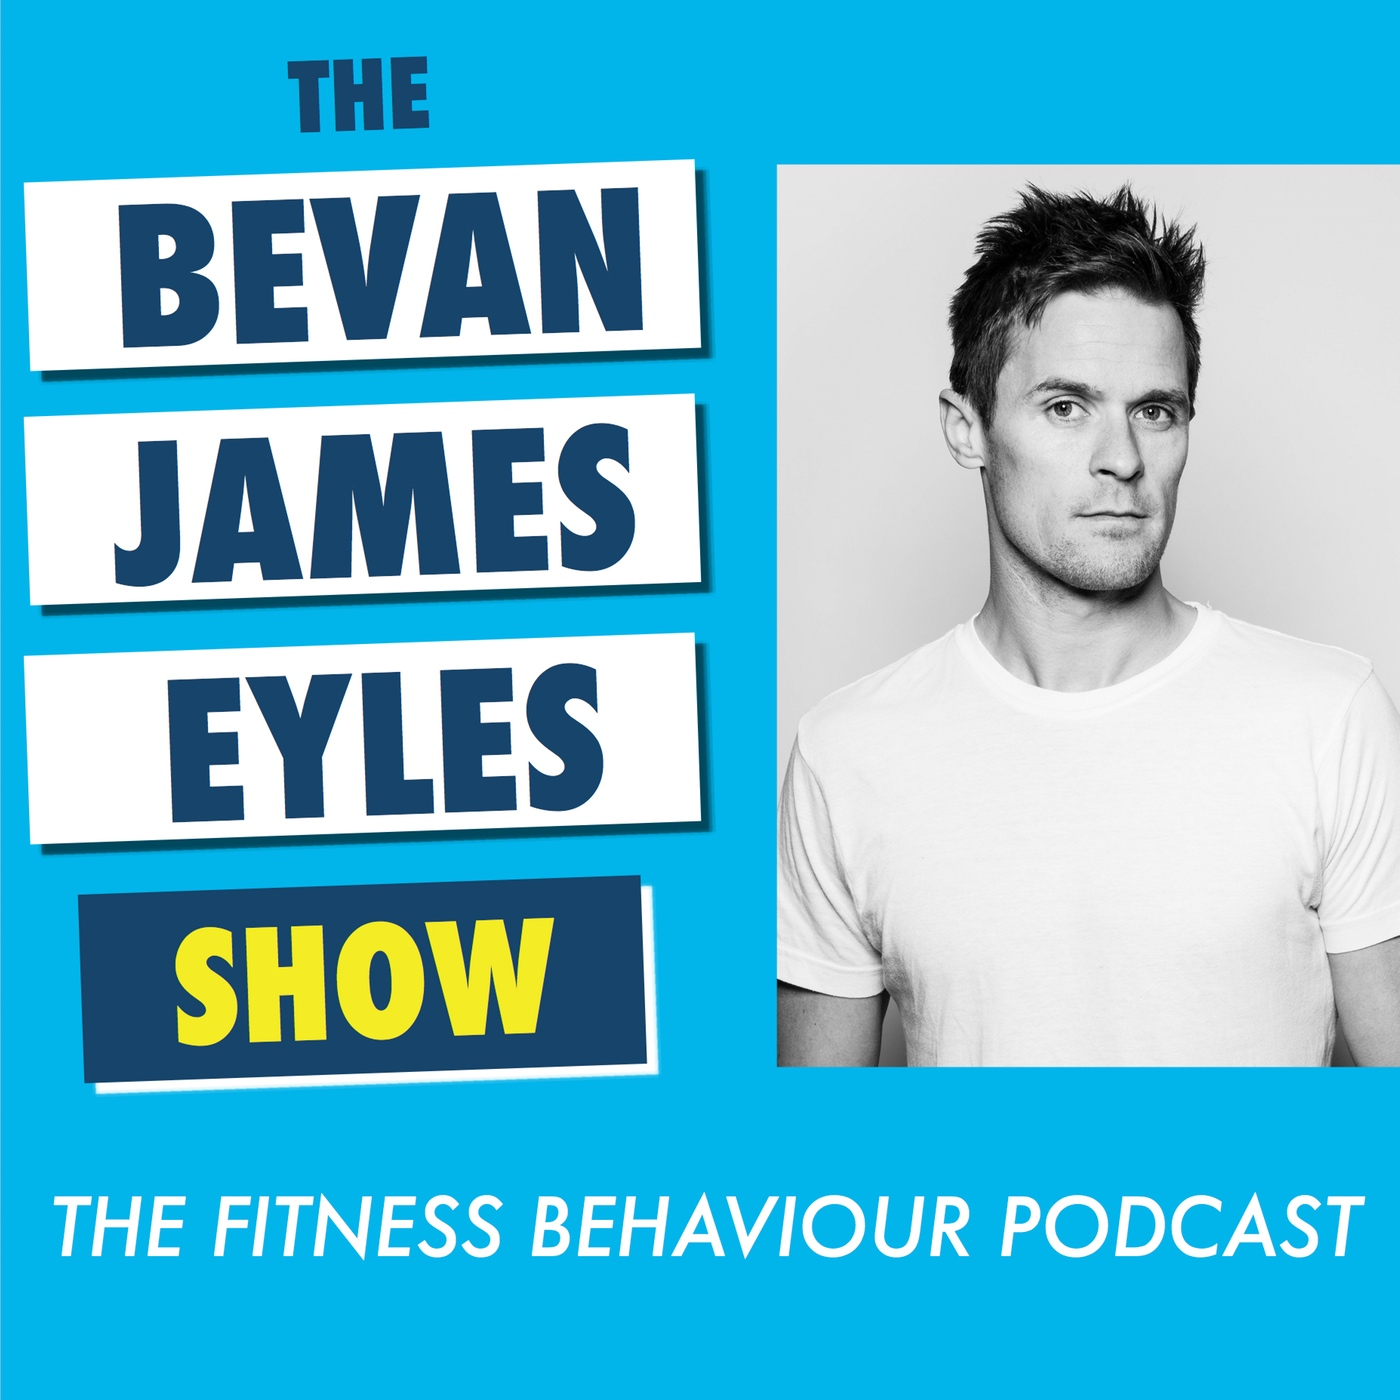 Artwork for The Bevan James Eyles Show, Episode 126 - I will persist until I succeed